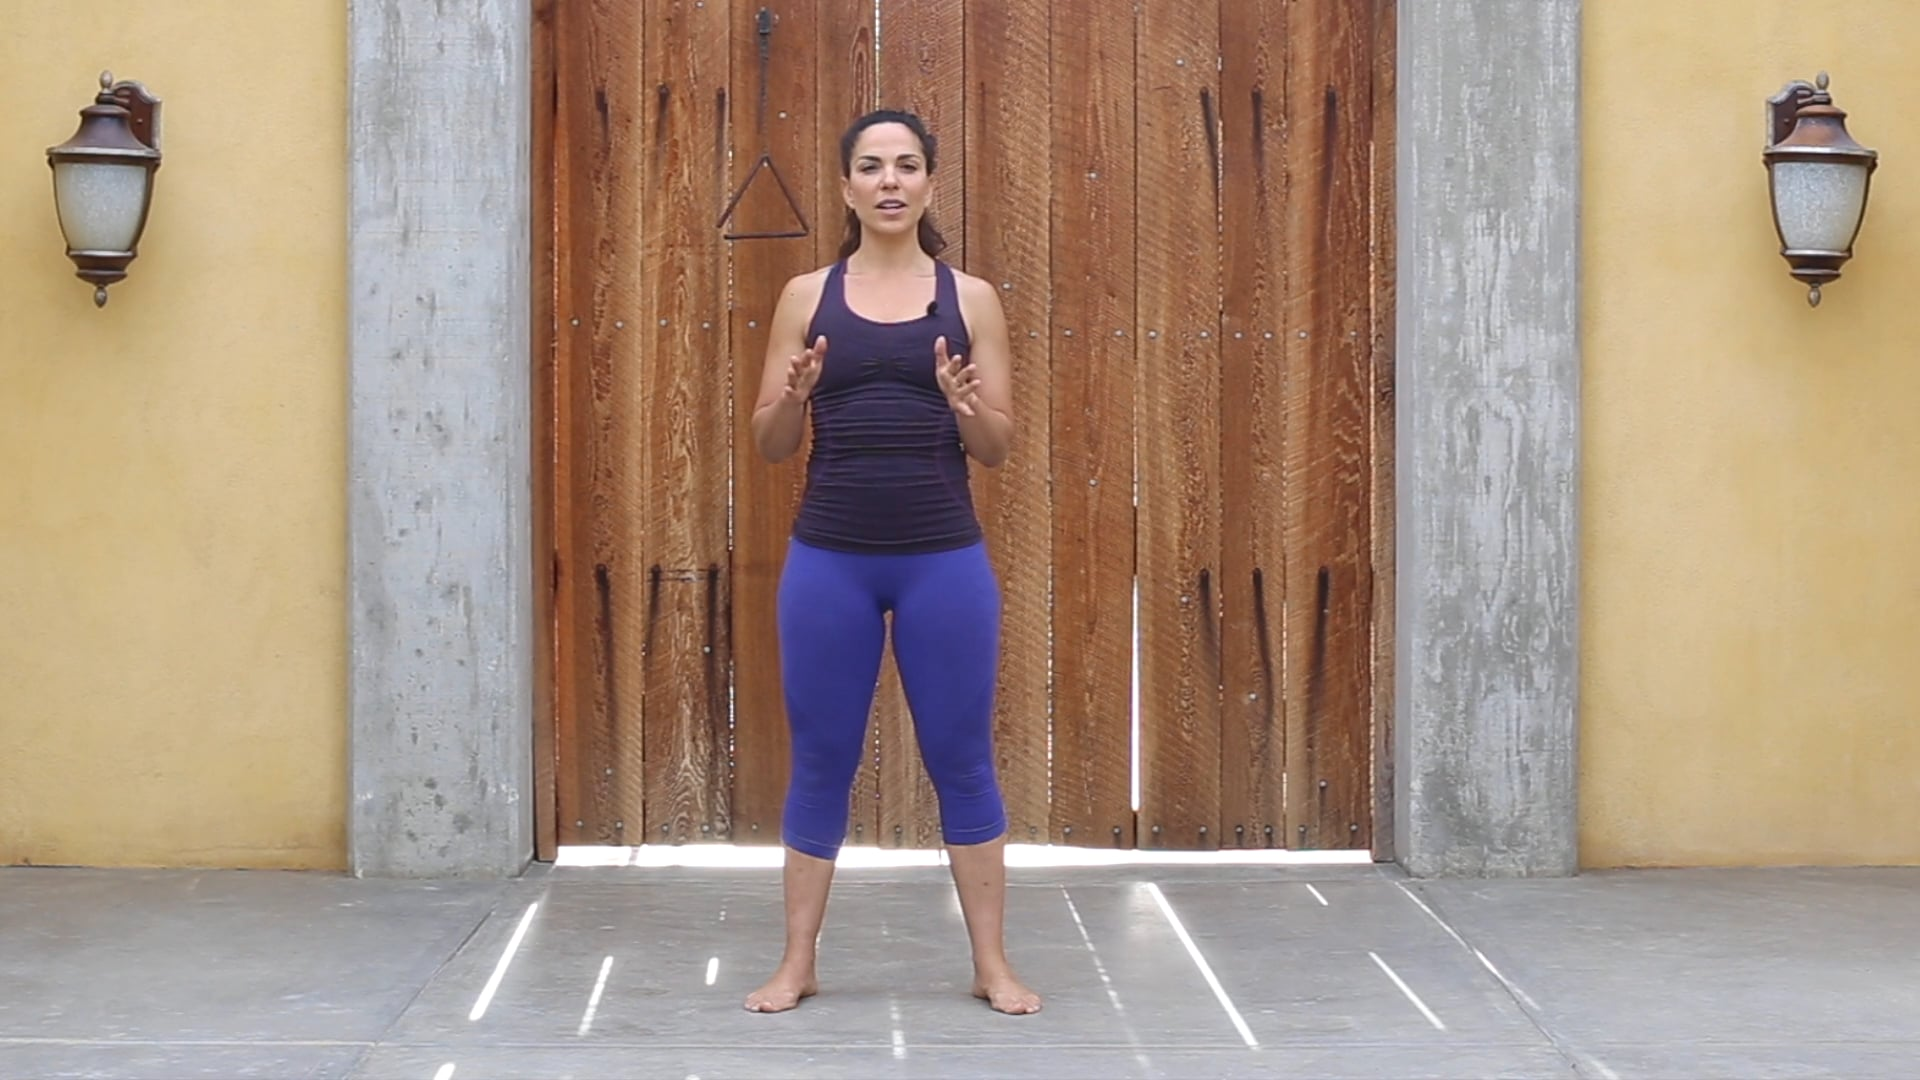 Foundations - Squatting and Lunging